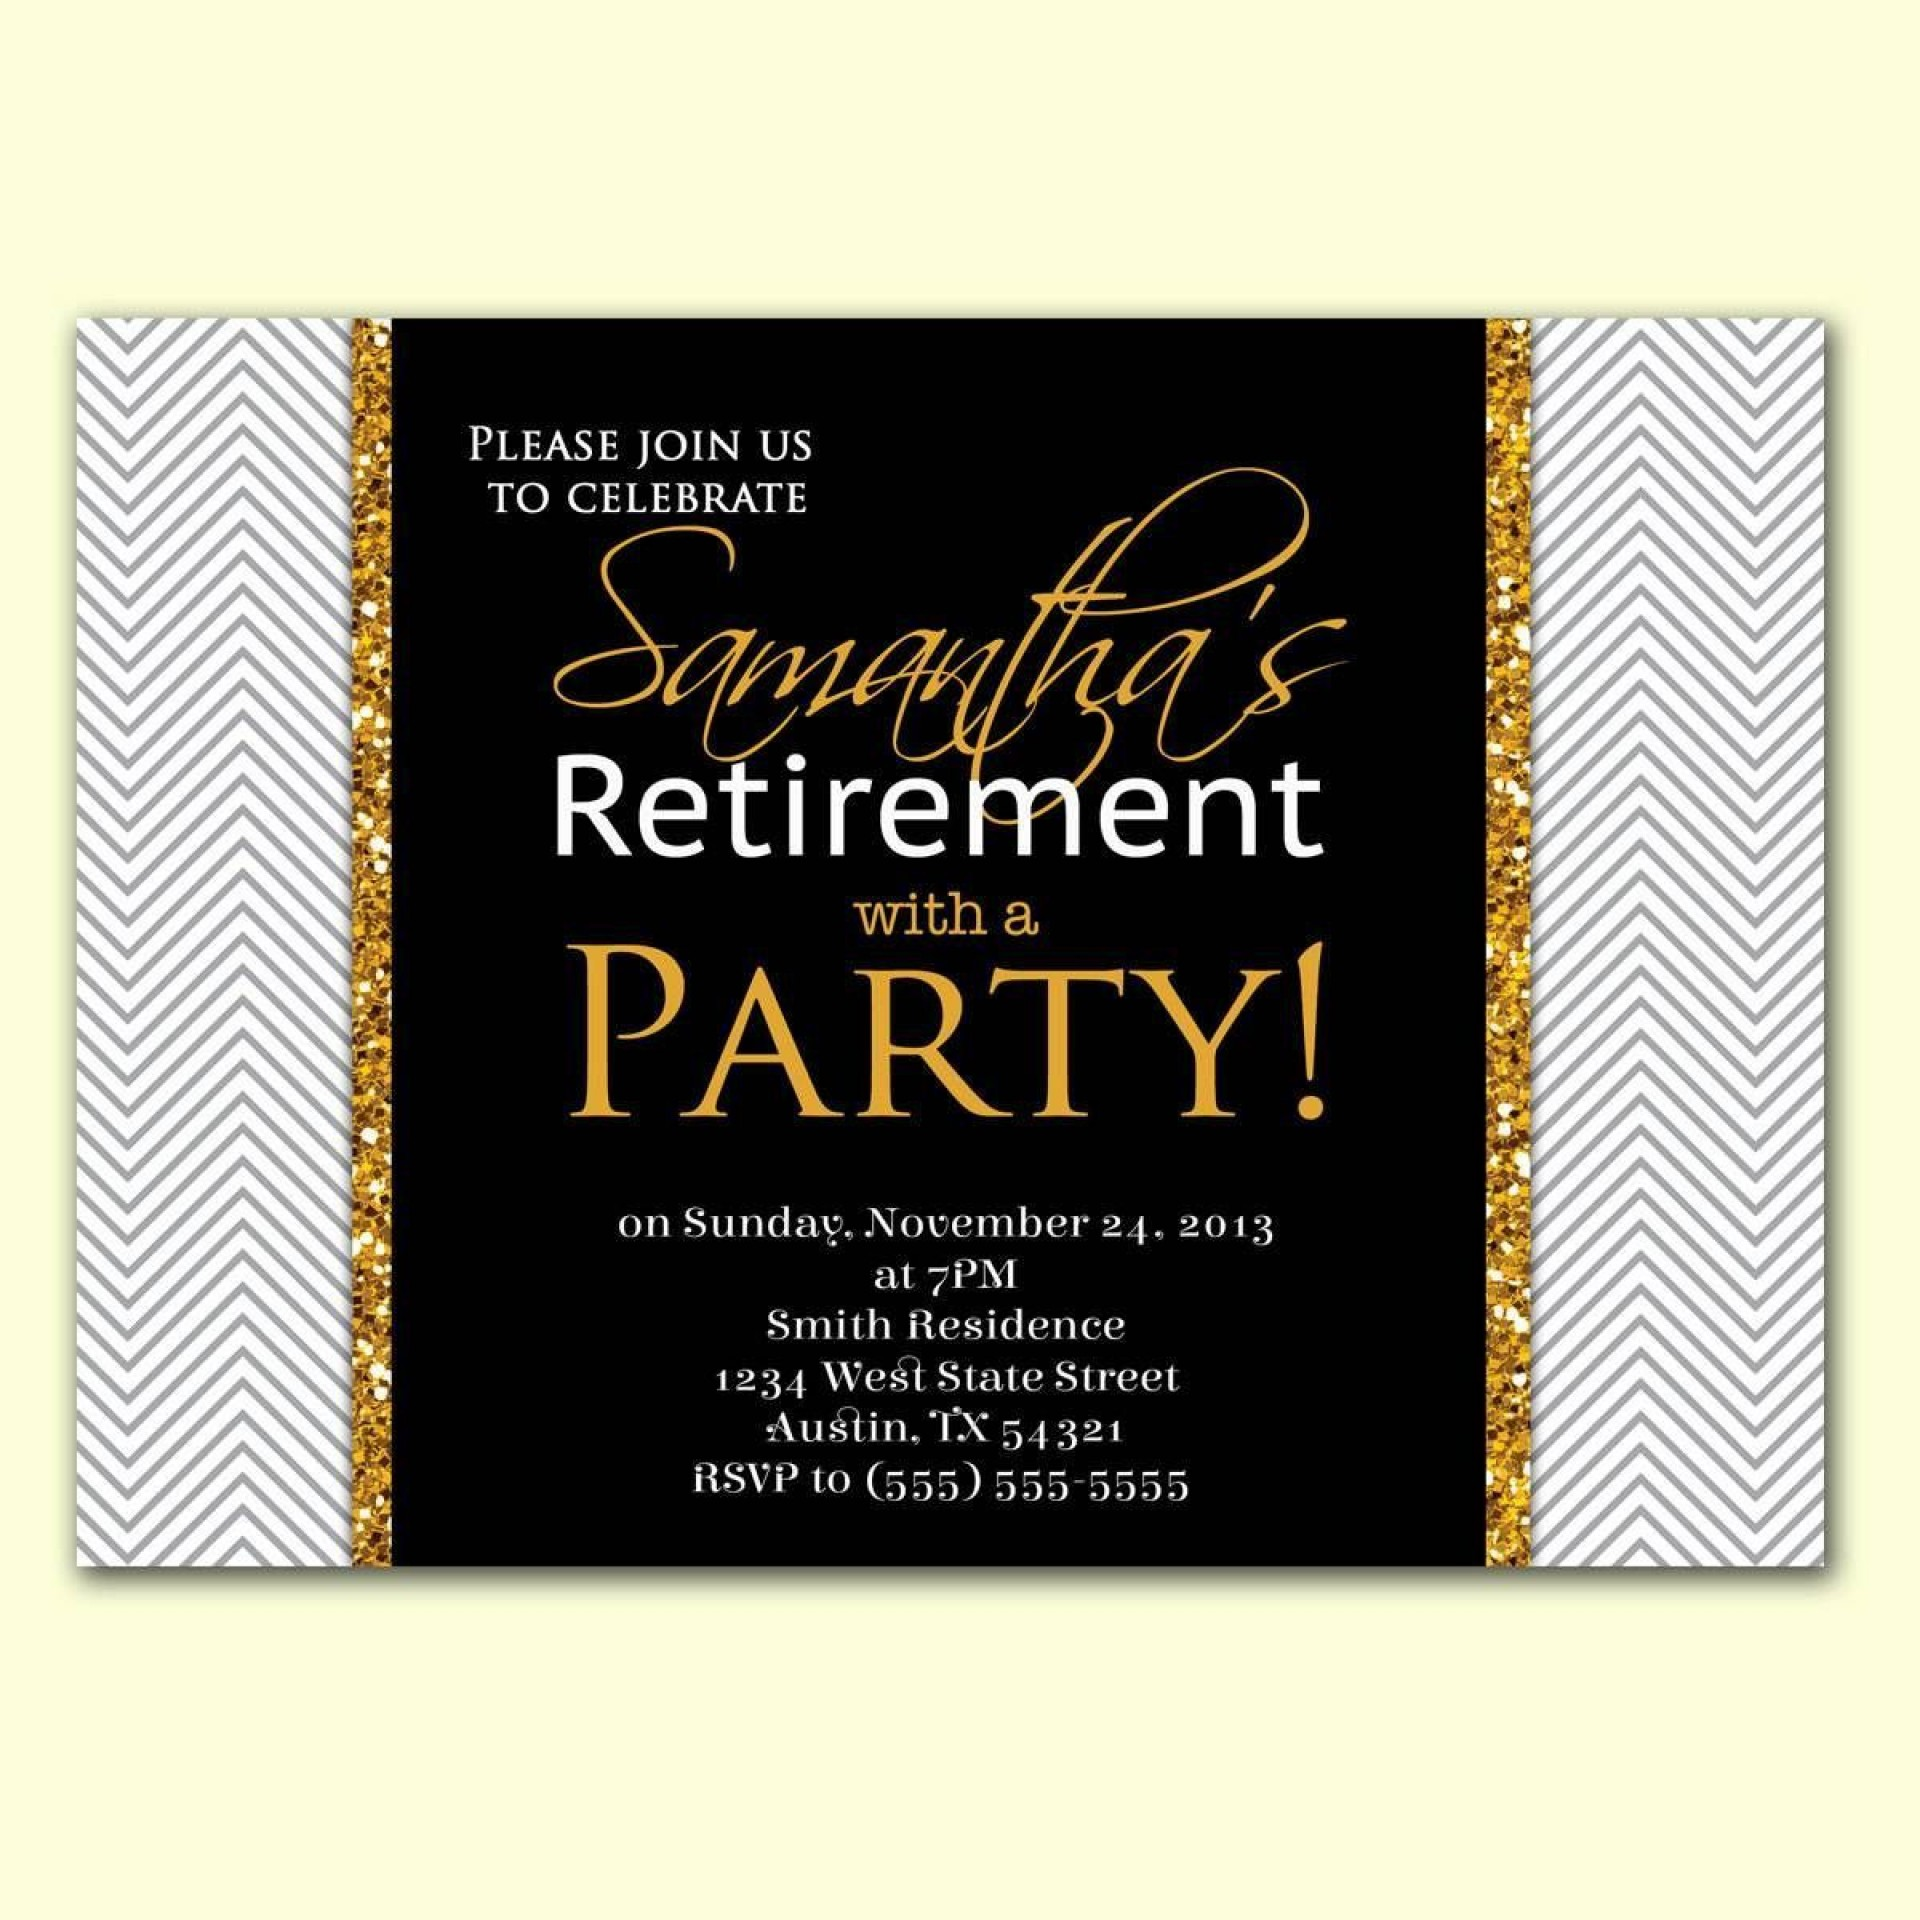 002 Wonderful Free Retirement Reception Invitation Template Concept  Templates1920